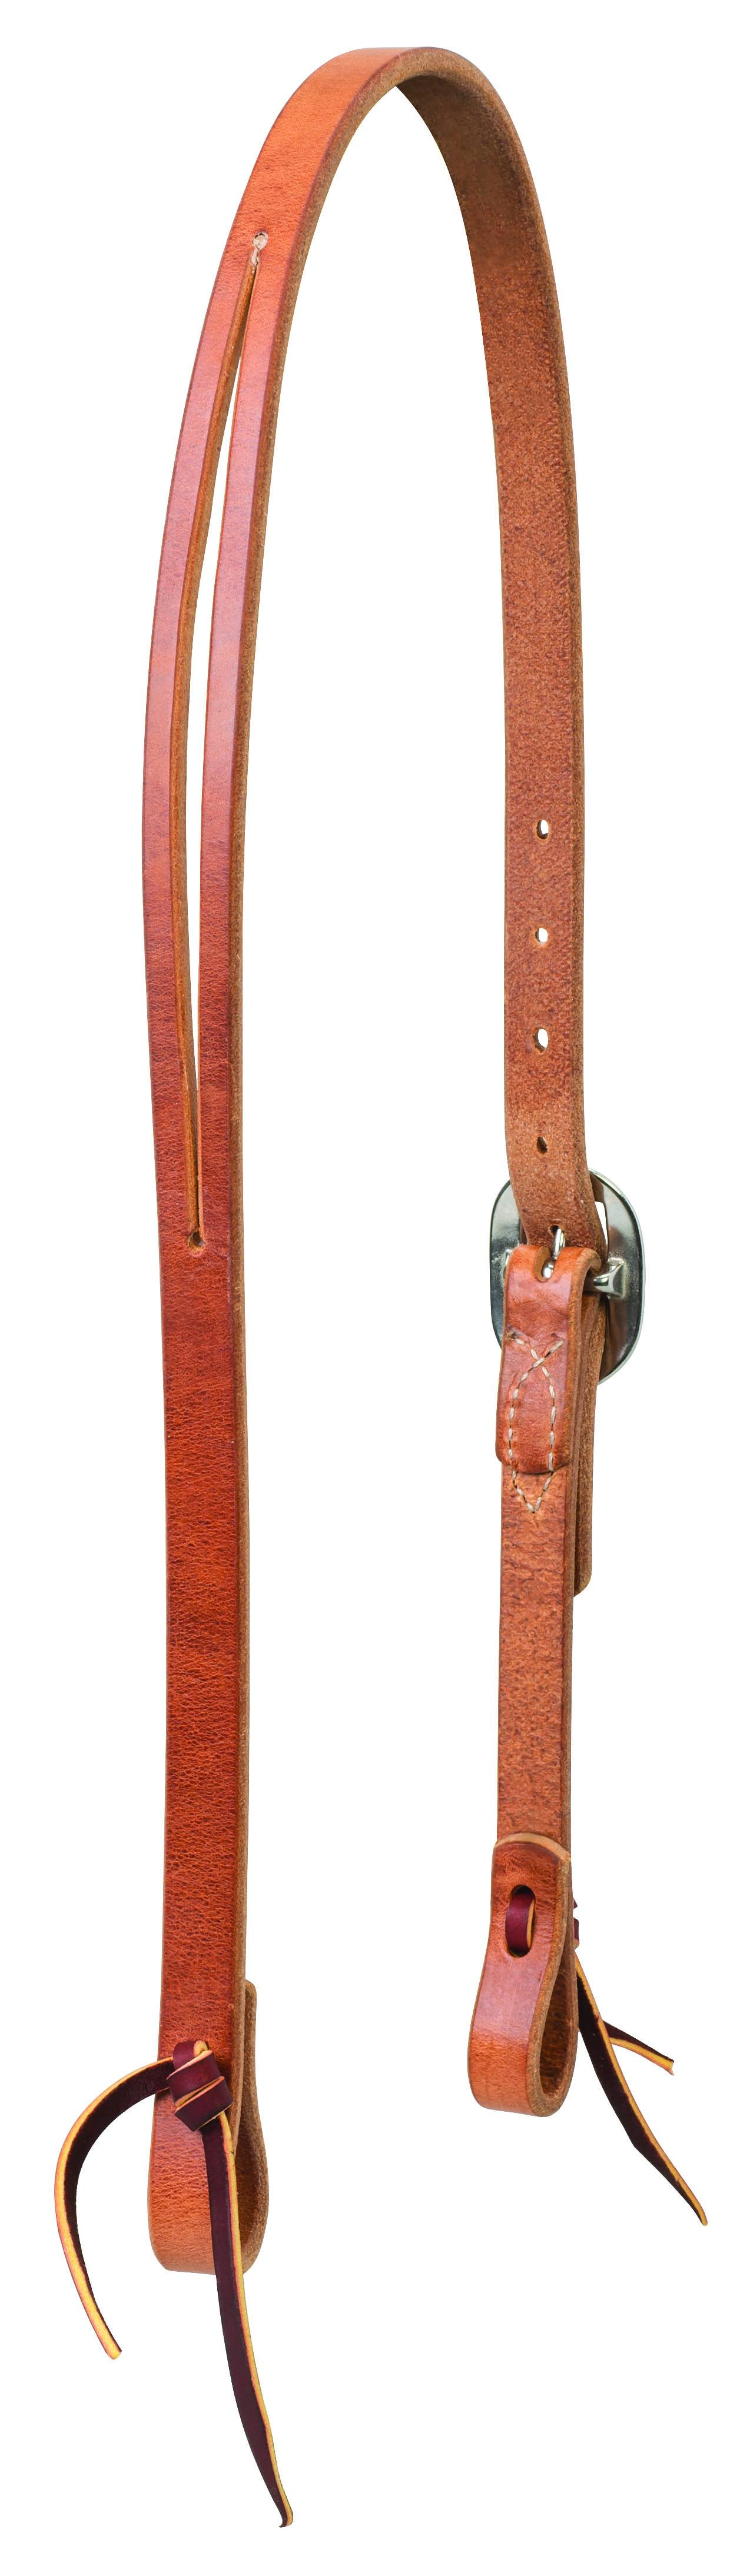 Weaver Buttered Premium Harness Leather Split Ear Headstall